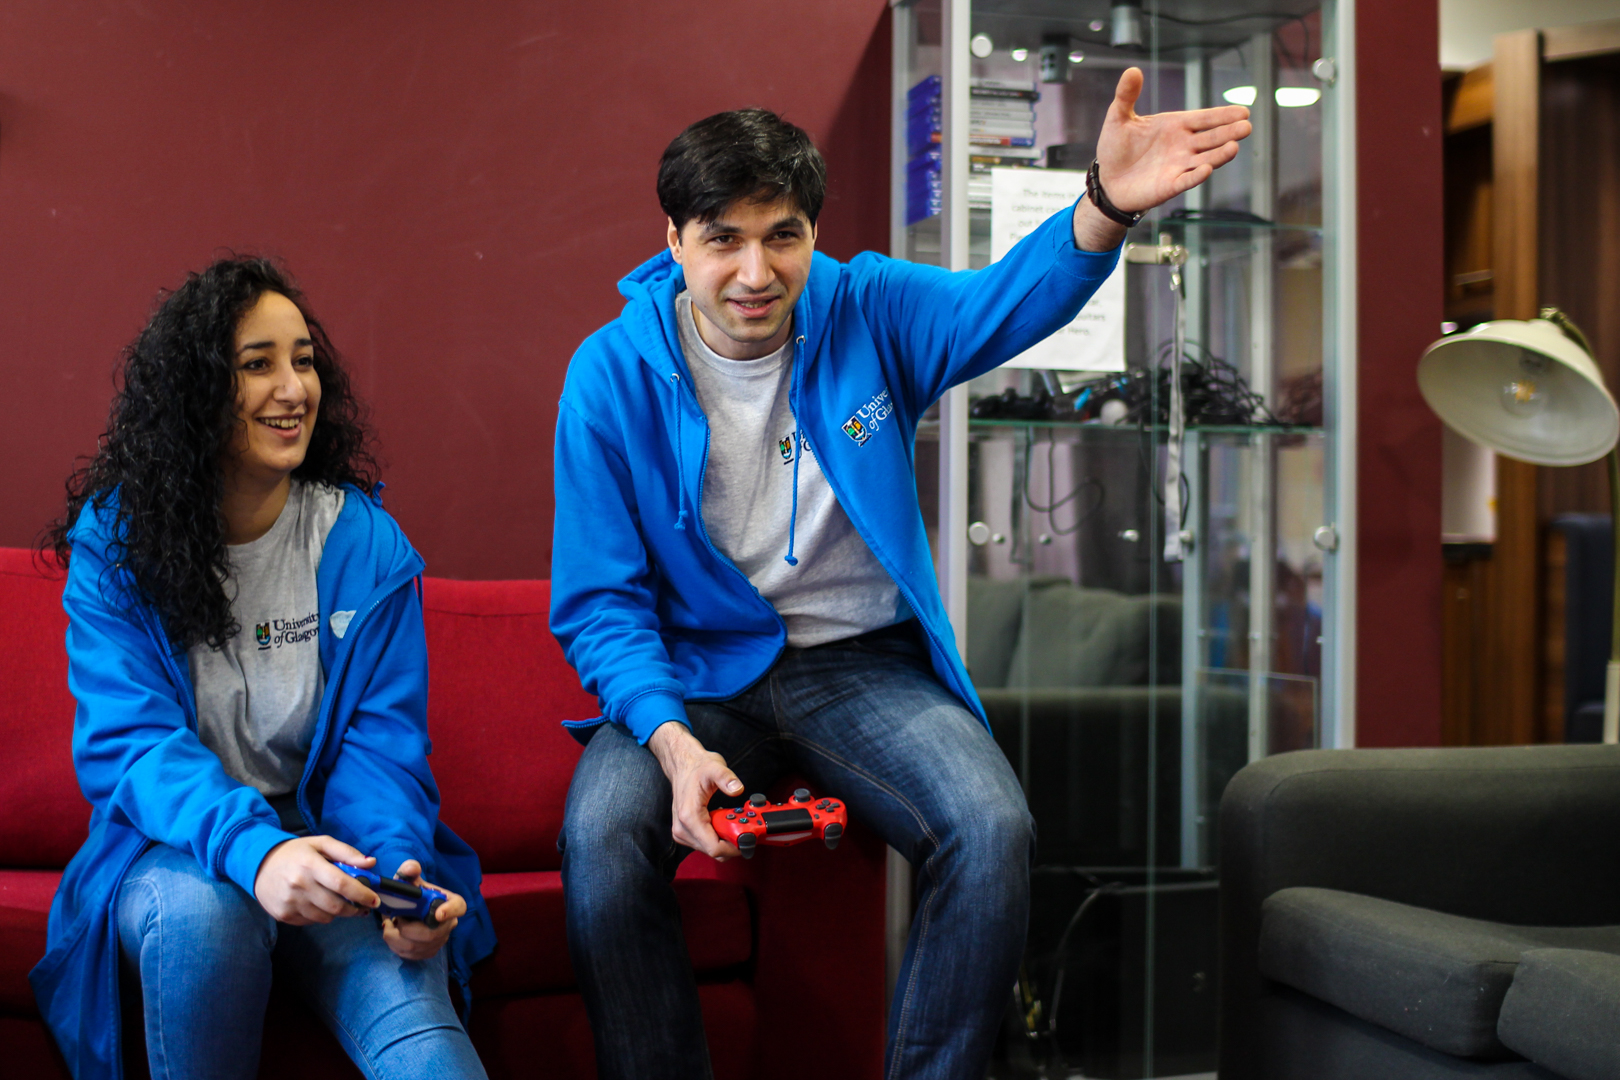 Two Living Support Assistants playing playstation